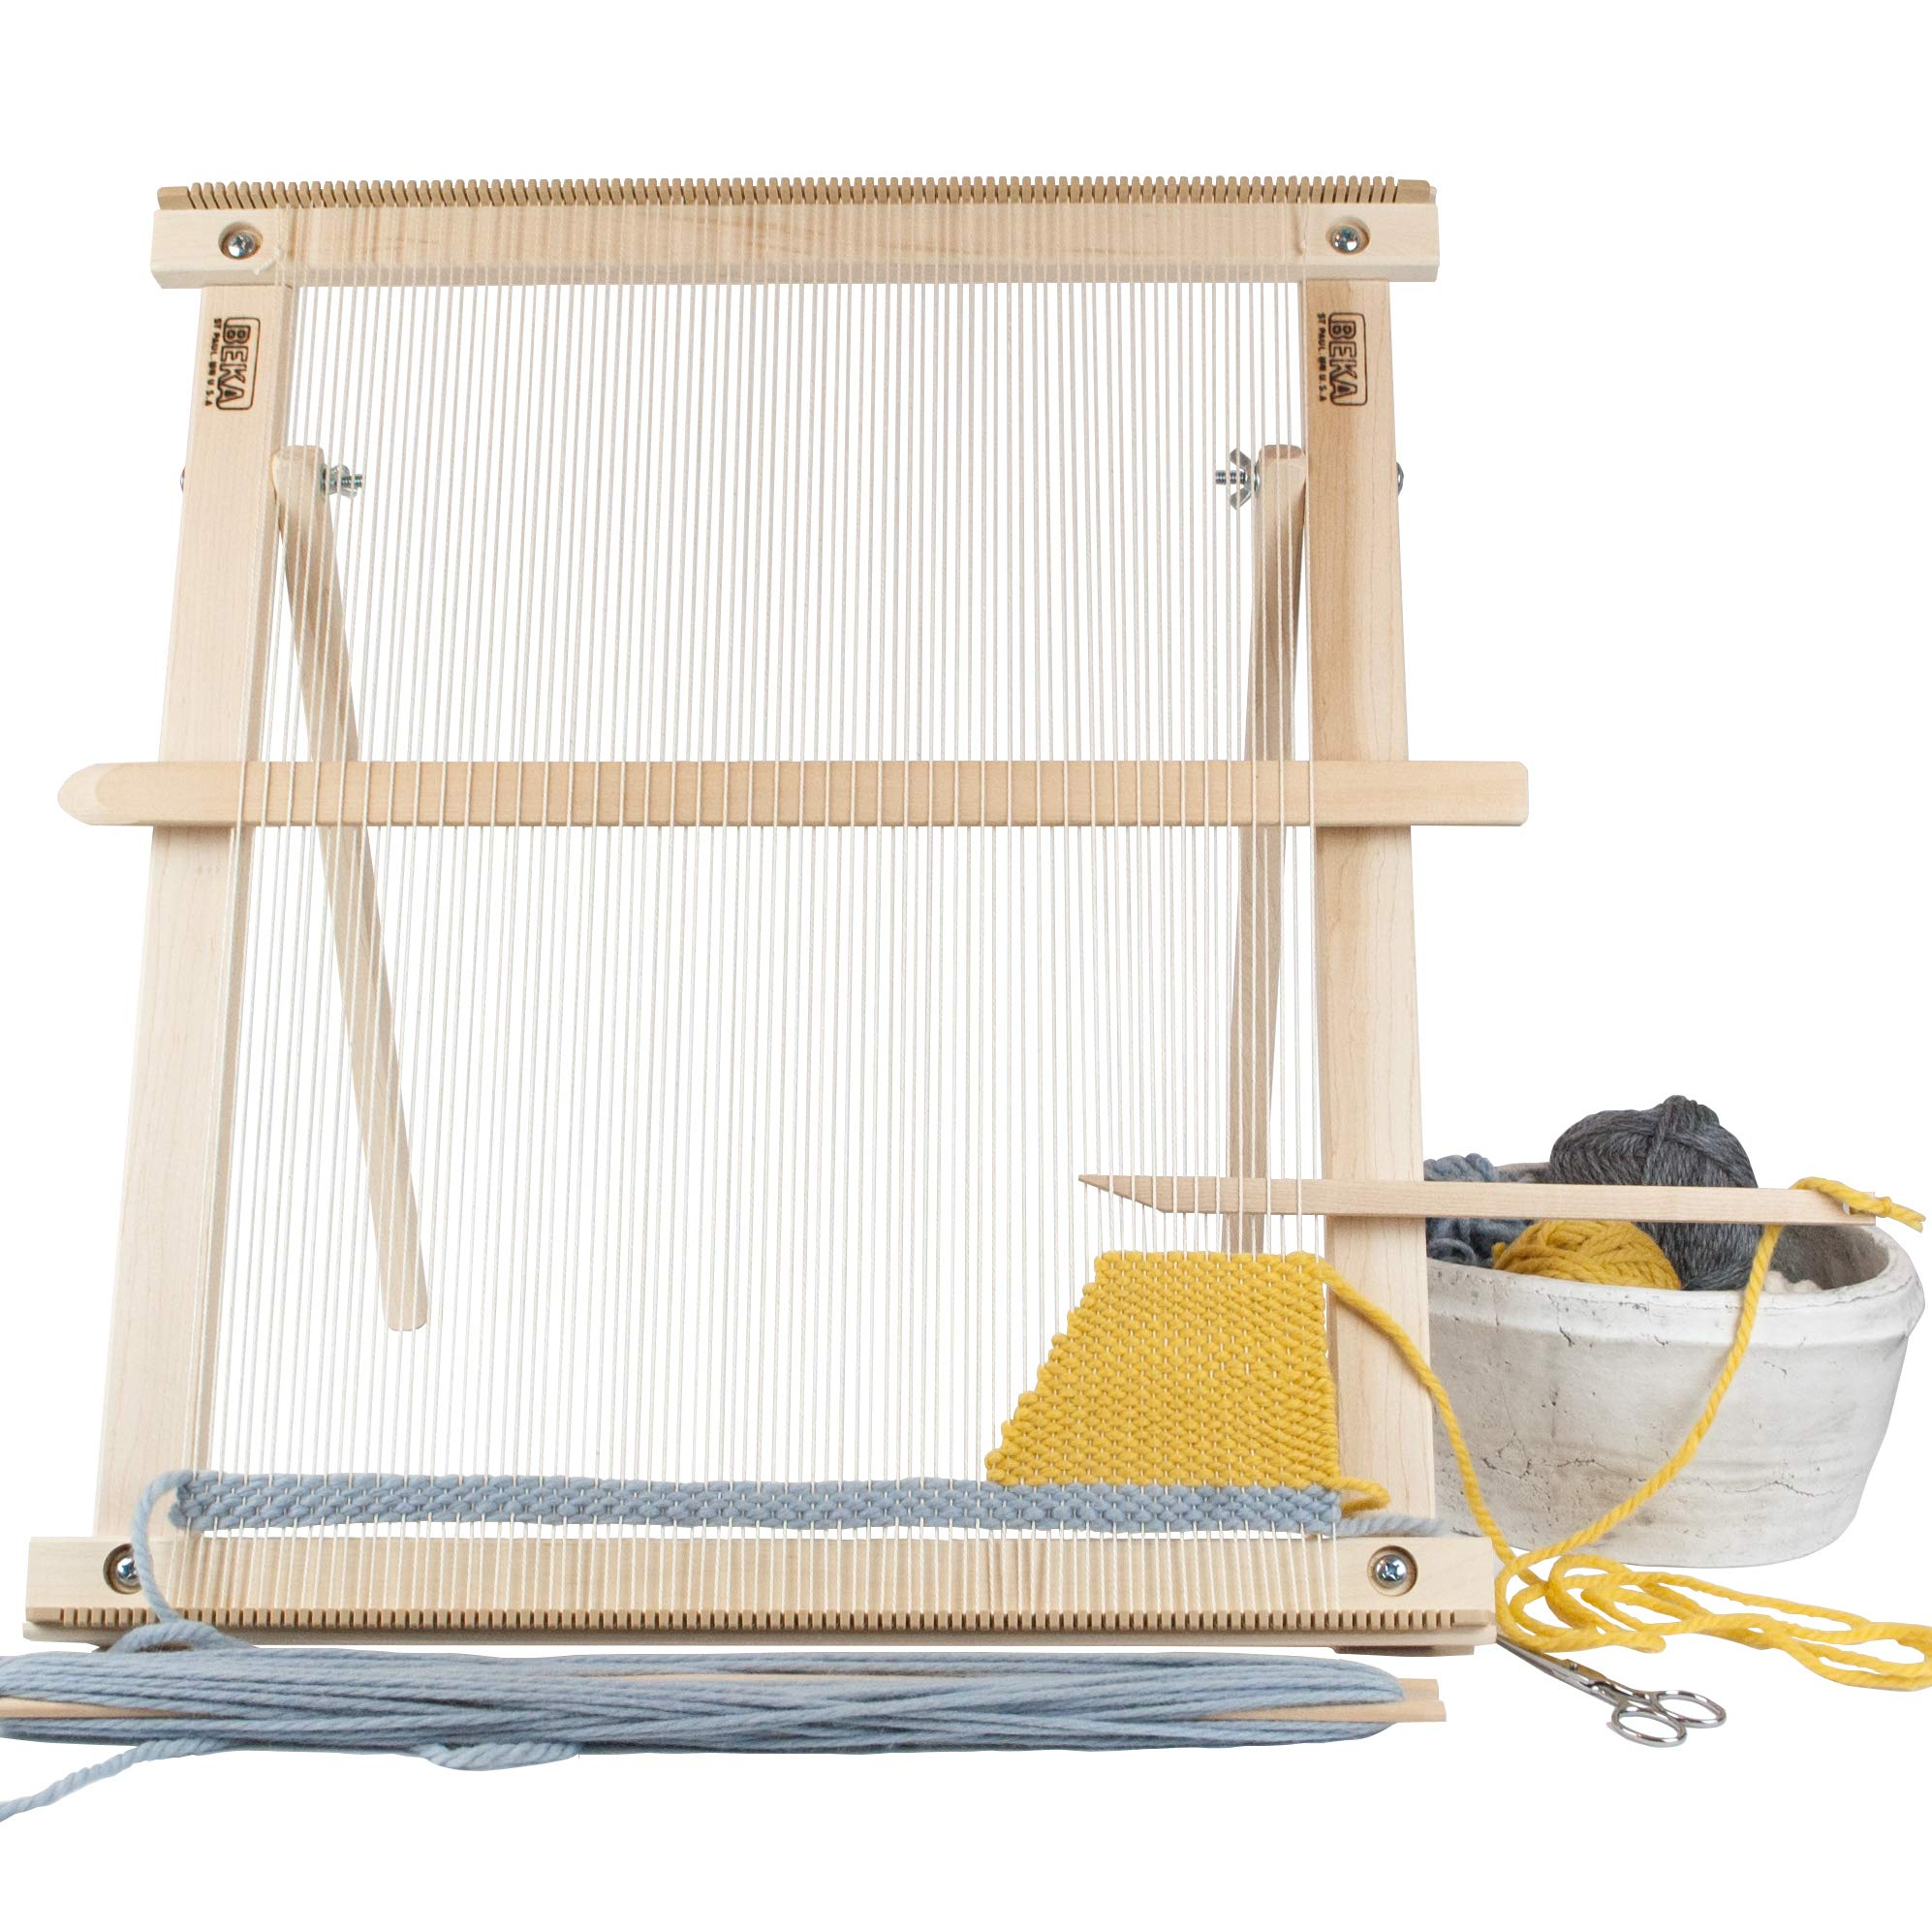 Beka 20'' Weaving Frame Loom with Stand - The Deluxe! by Beka